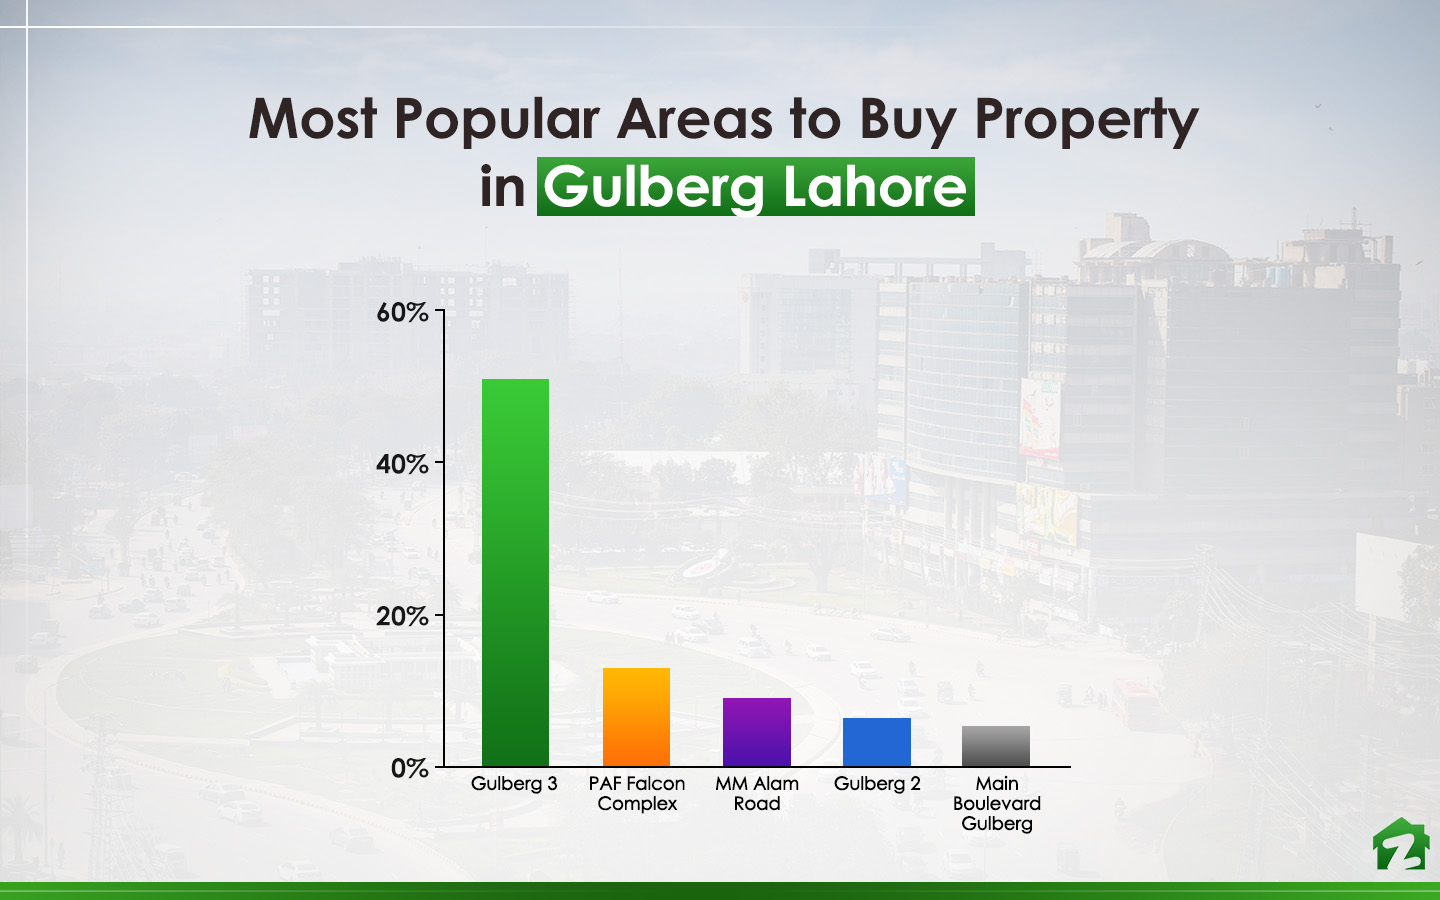 Gulberg 3 is the preferred choice when it comes to buying properties